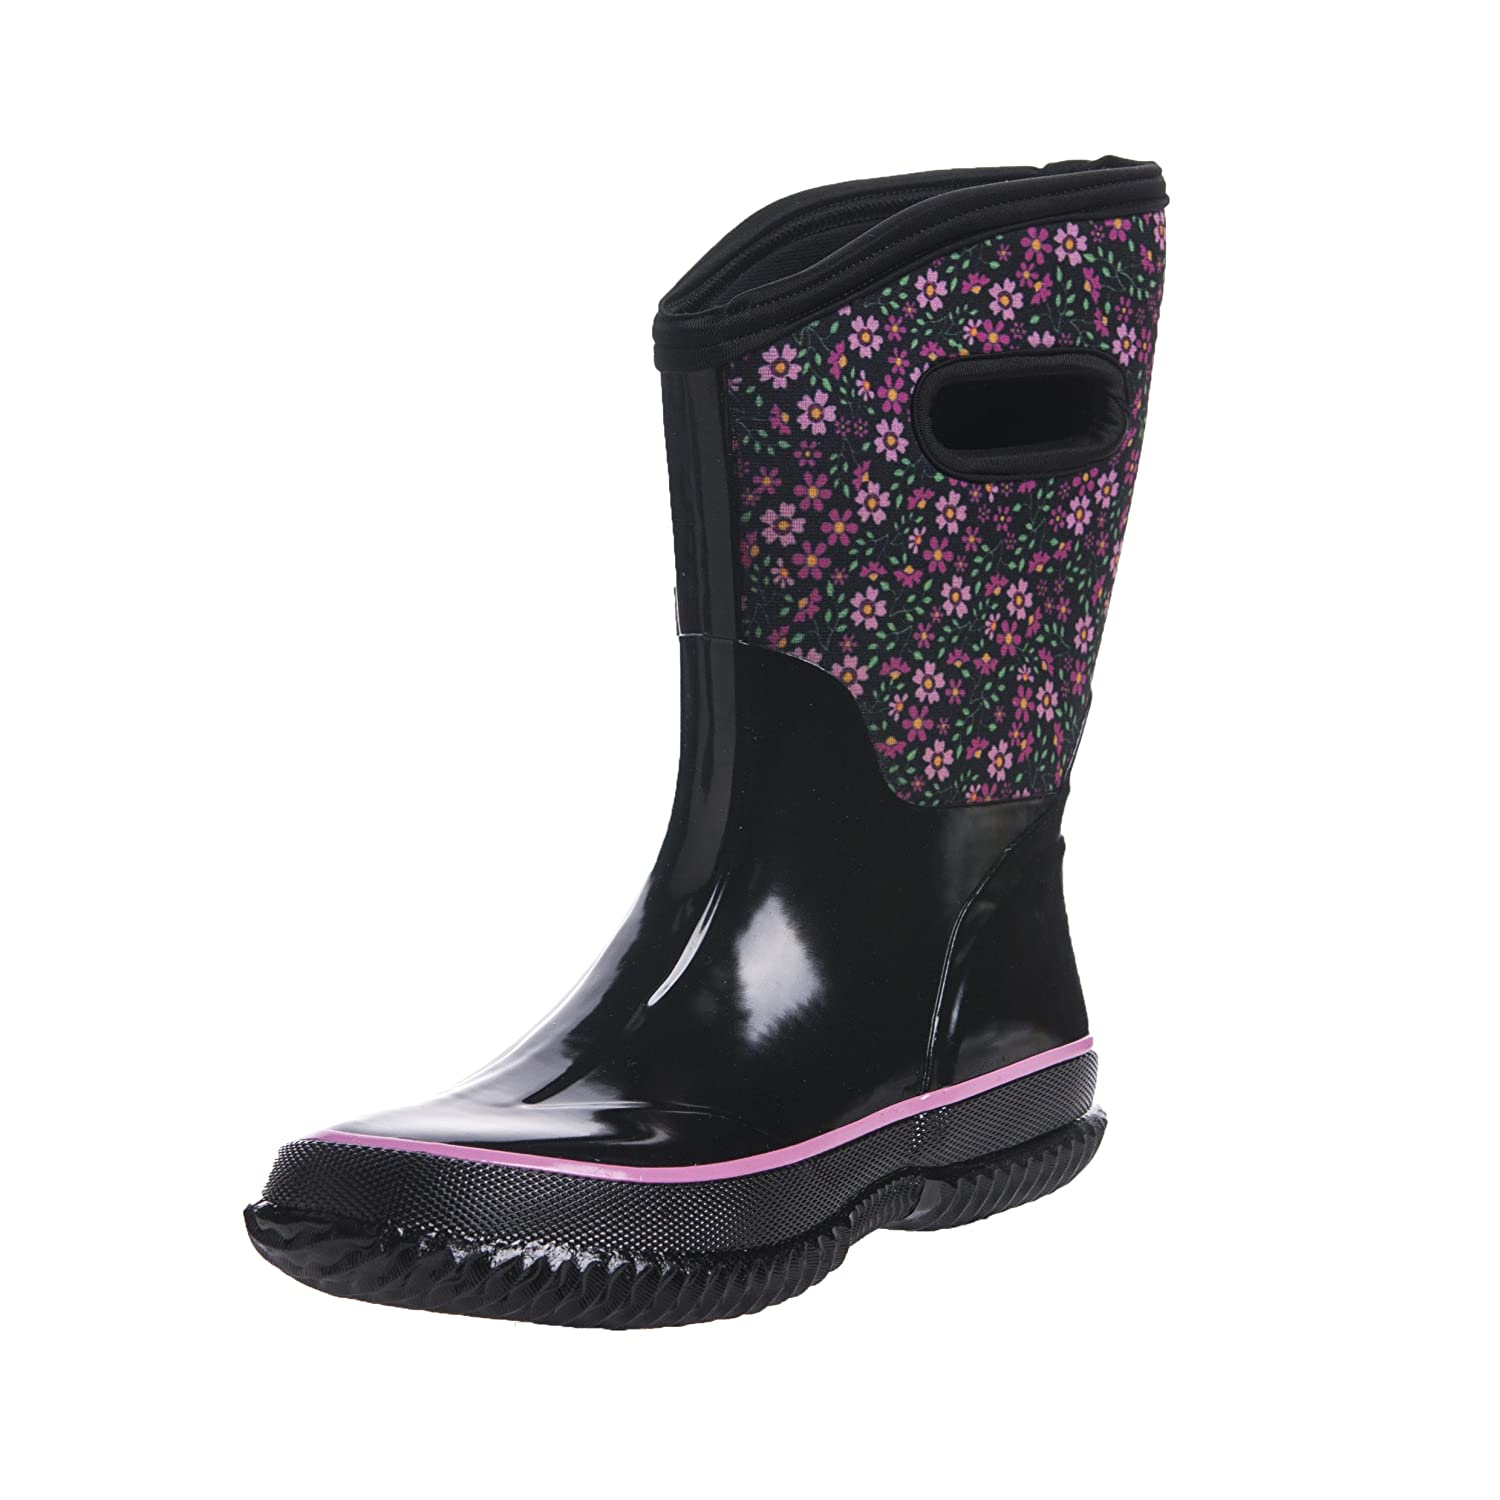 d48fc76db3a9 Amazon.com | WTW Women's Floral Wide-Calf Neoprene Insulated Rubber Rain  Snow Boots for Ladies, Mid-Calf Thick-Sole Warm Winnter Waterproof Women  Barn Boots ...